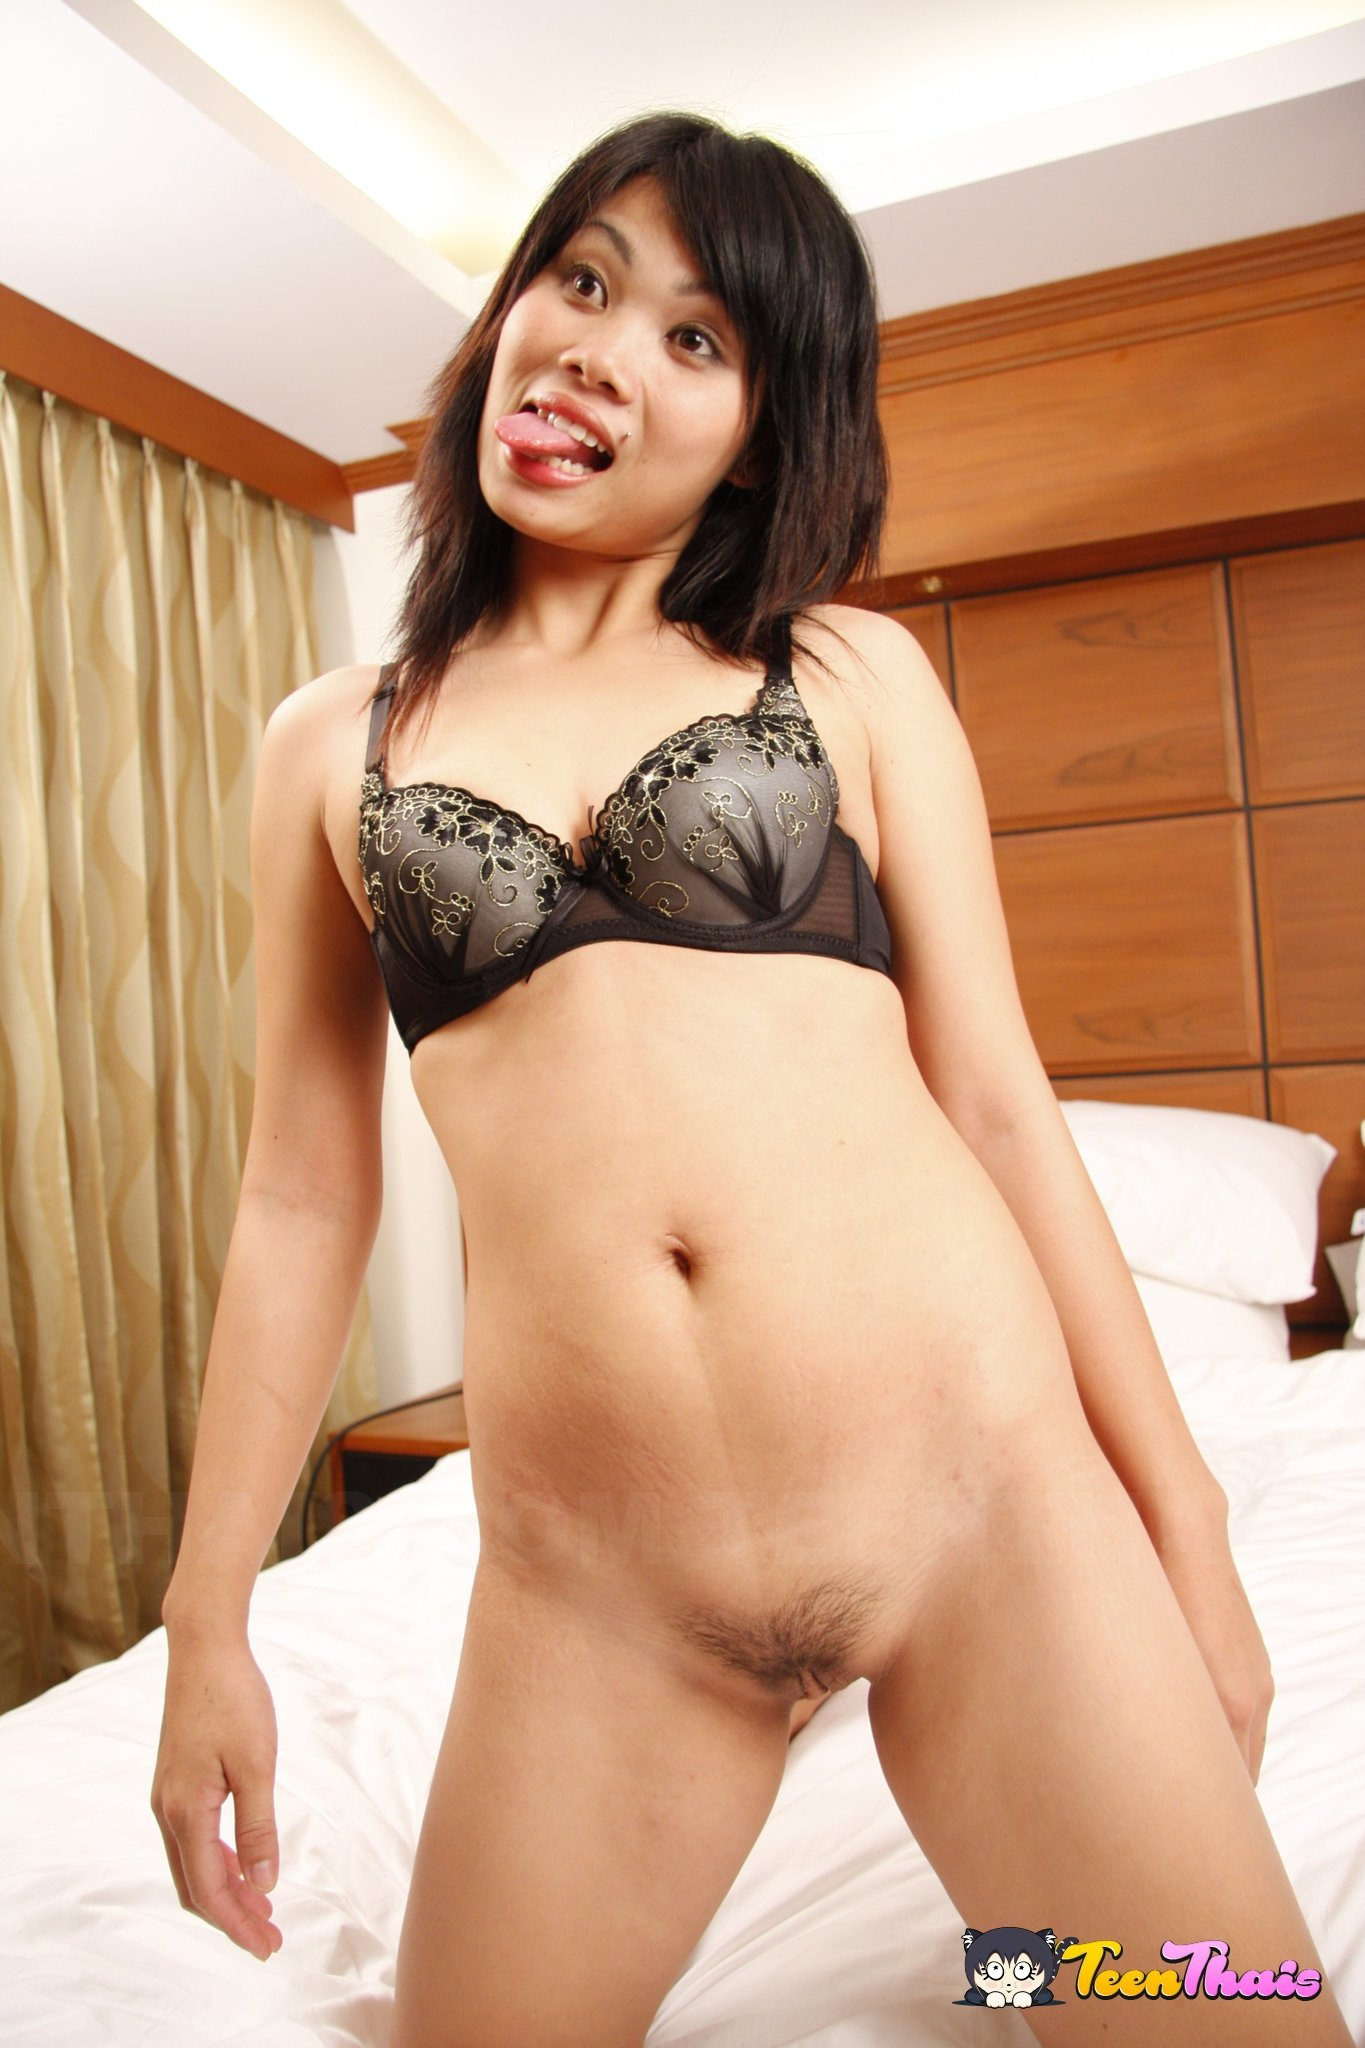 pinay maid porn add photo